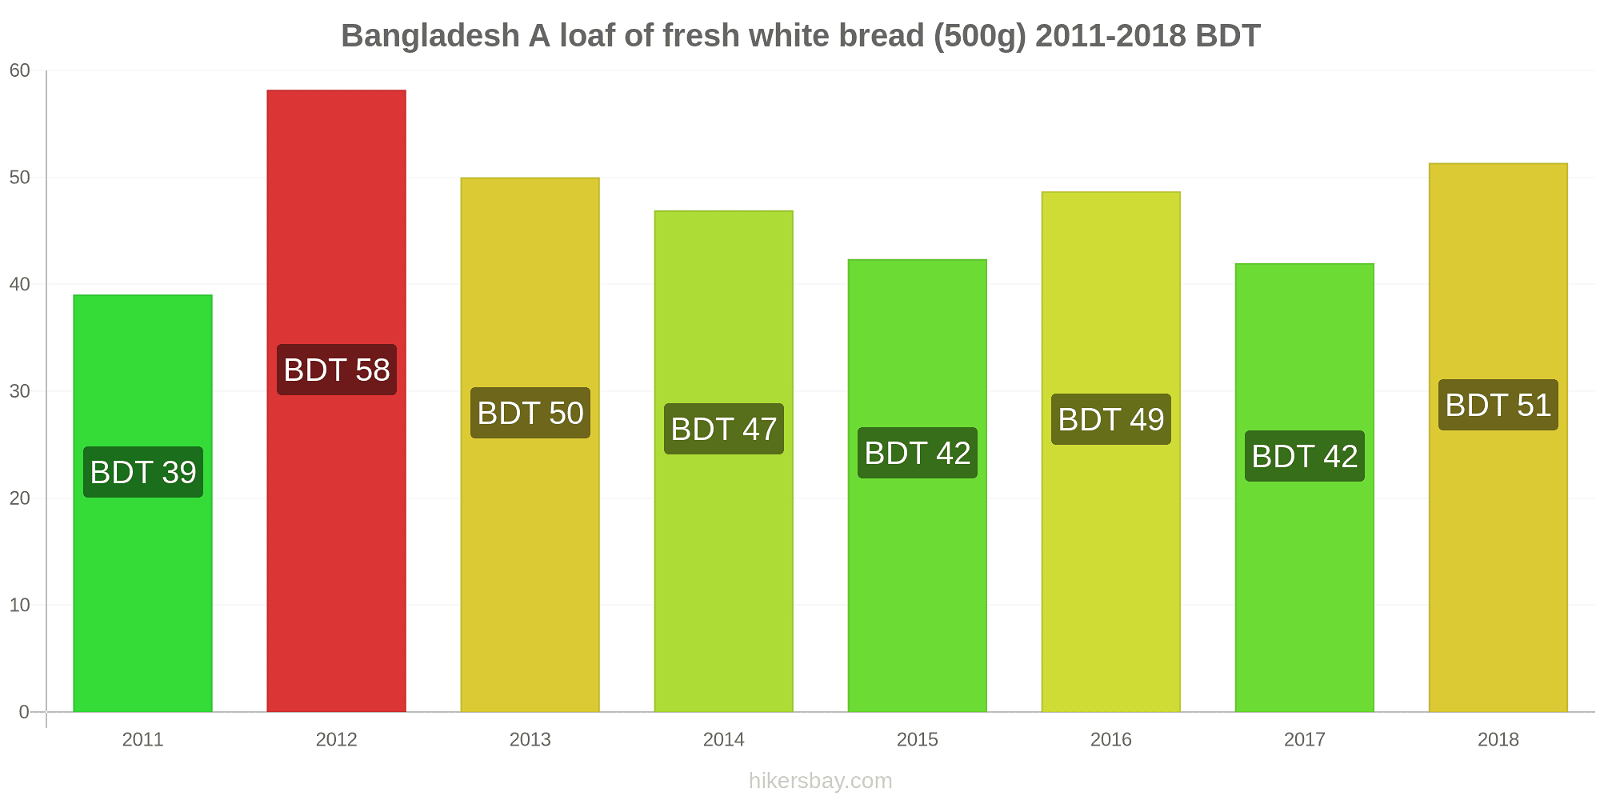 Bangladesh price changes A loaf of fresh white bread (500g) hikersbay.com